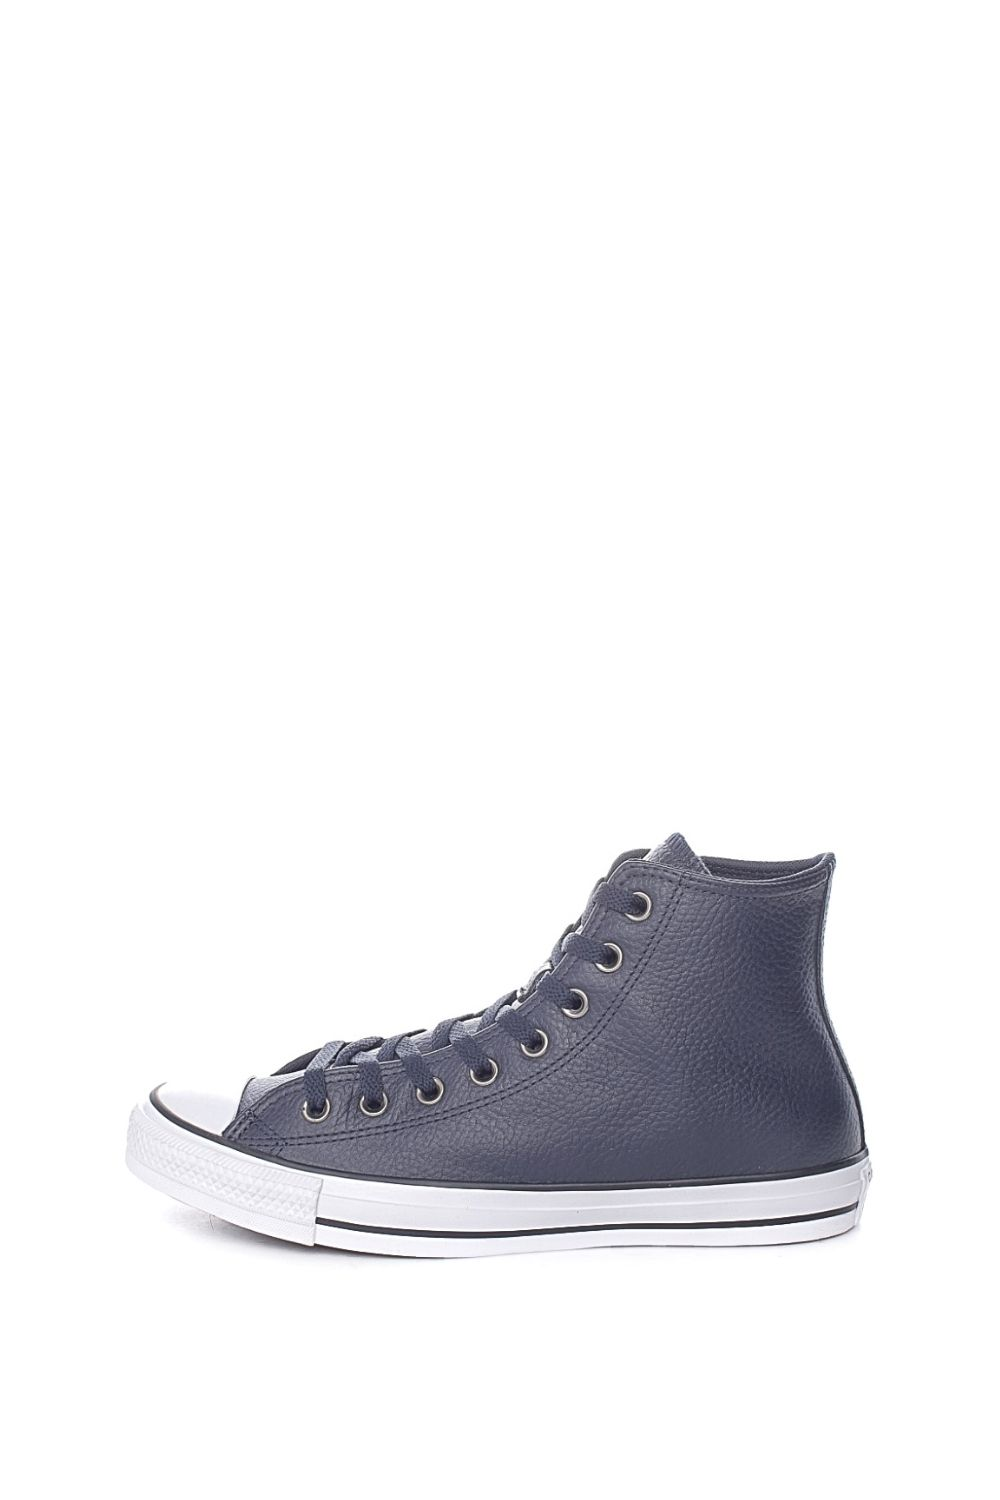 CONVERSE – Unisex μποτάκια sneakers CONVERSE Chuck Taylor All Star μπλε